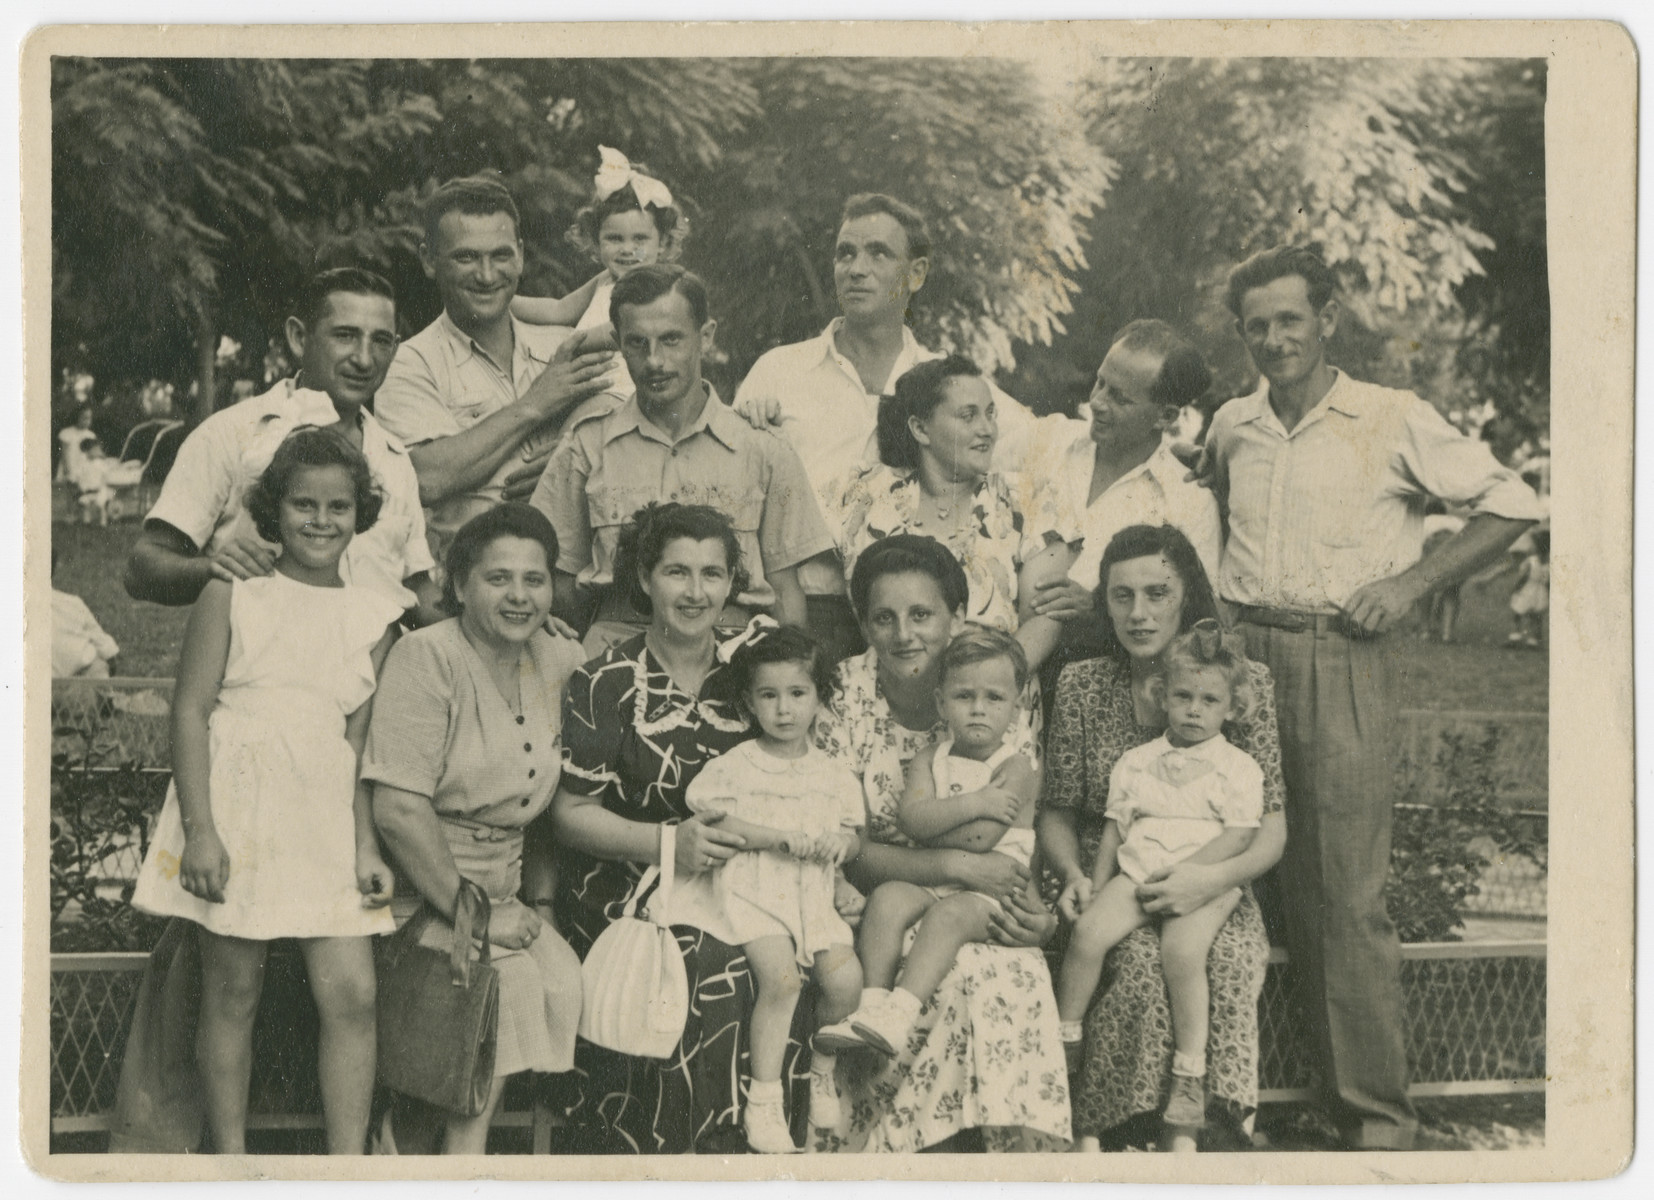 Group portrait of some former Bielski partisans in Israel.  Yehuda Bielski is standing on the far right.  His wife Lola, holding their daughter Nili,  is seated on the far right.  Tuvia Bielski is standing second from the left holding his daughter Ruth, and Zus Bielski is standing in the back center.  Eli Hudes (Lola's brother) is standing between Tuvia and Zus.